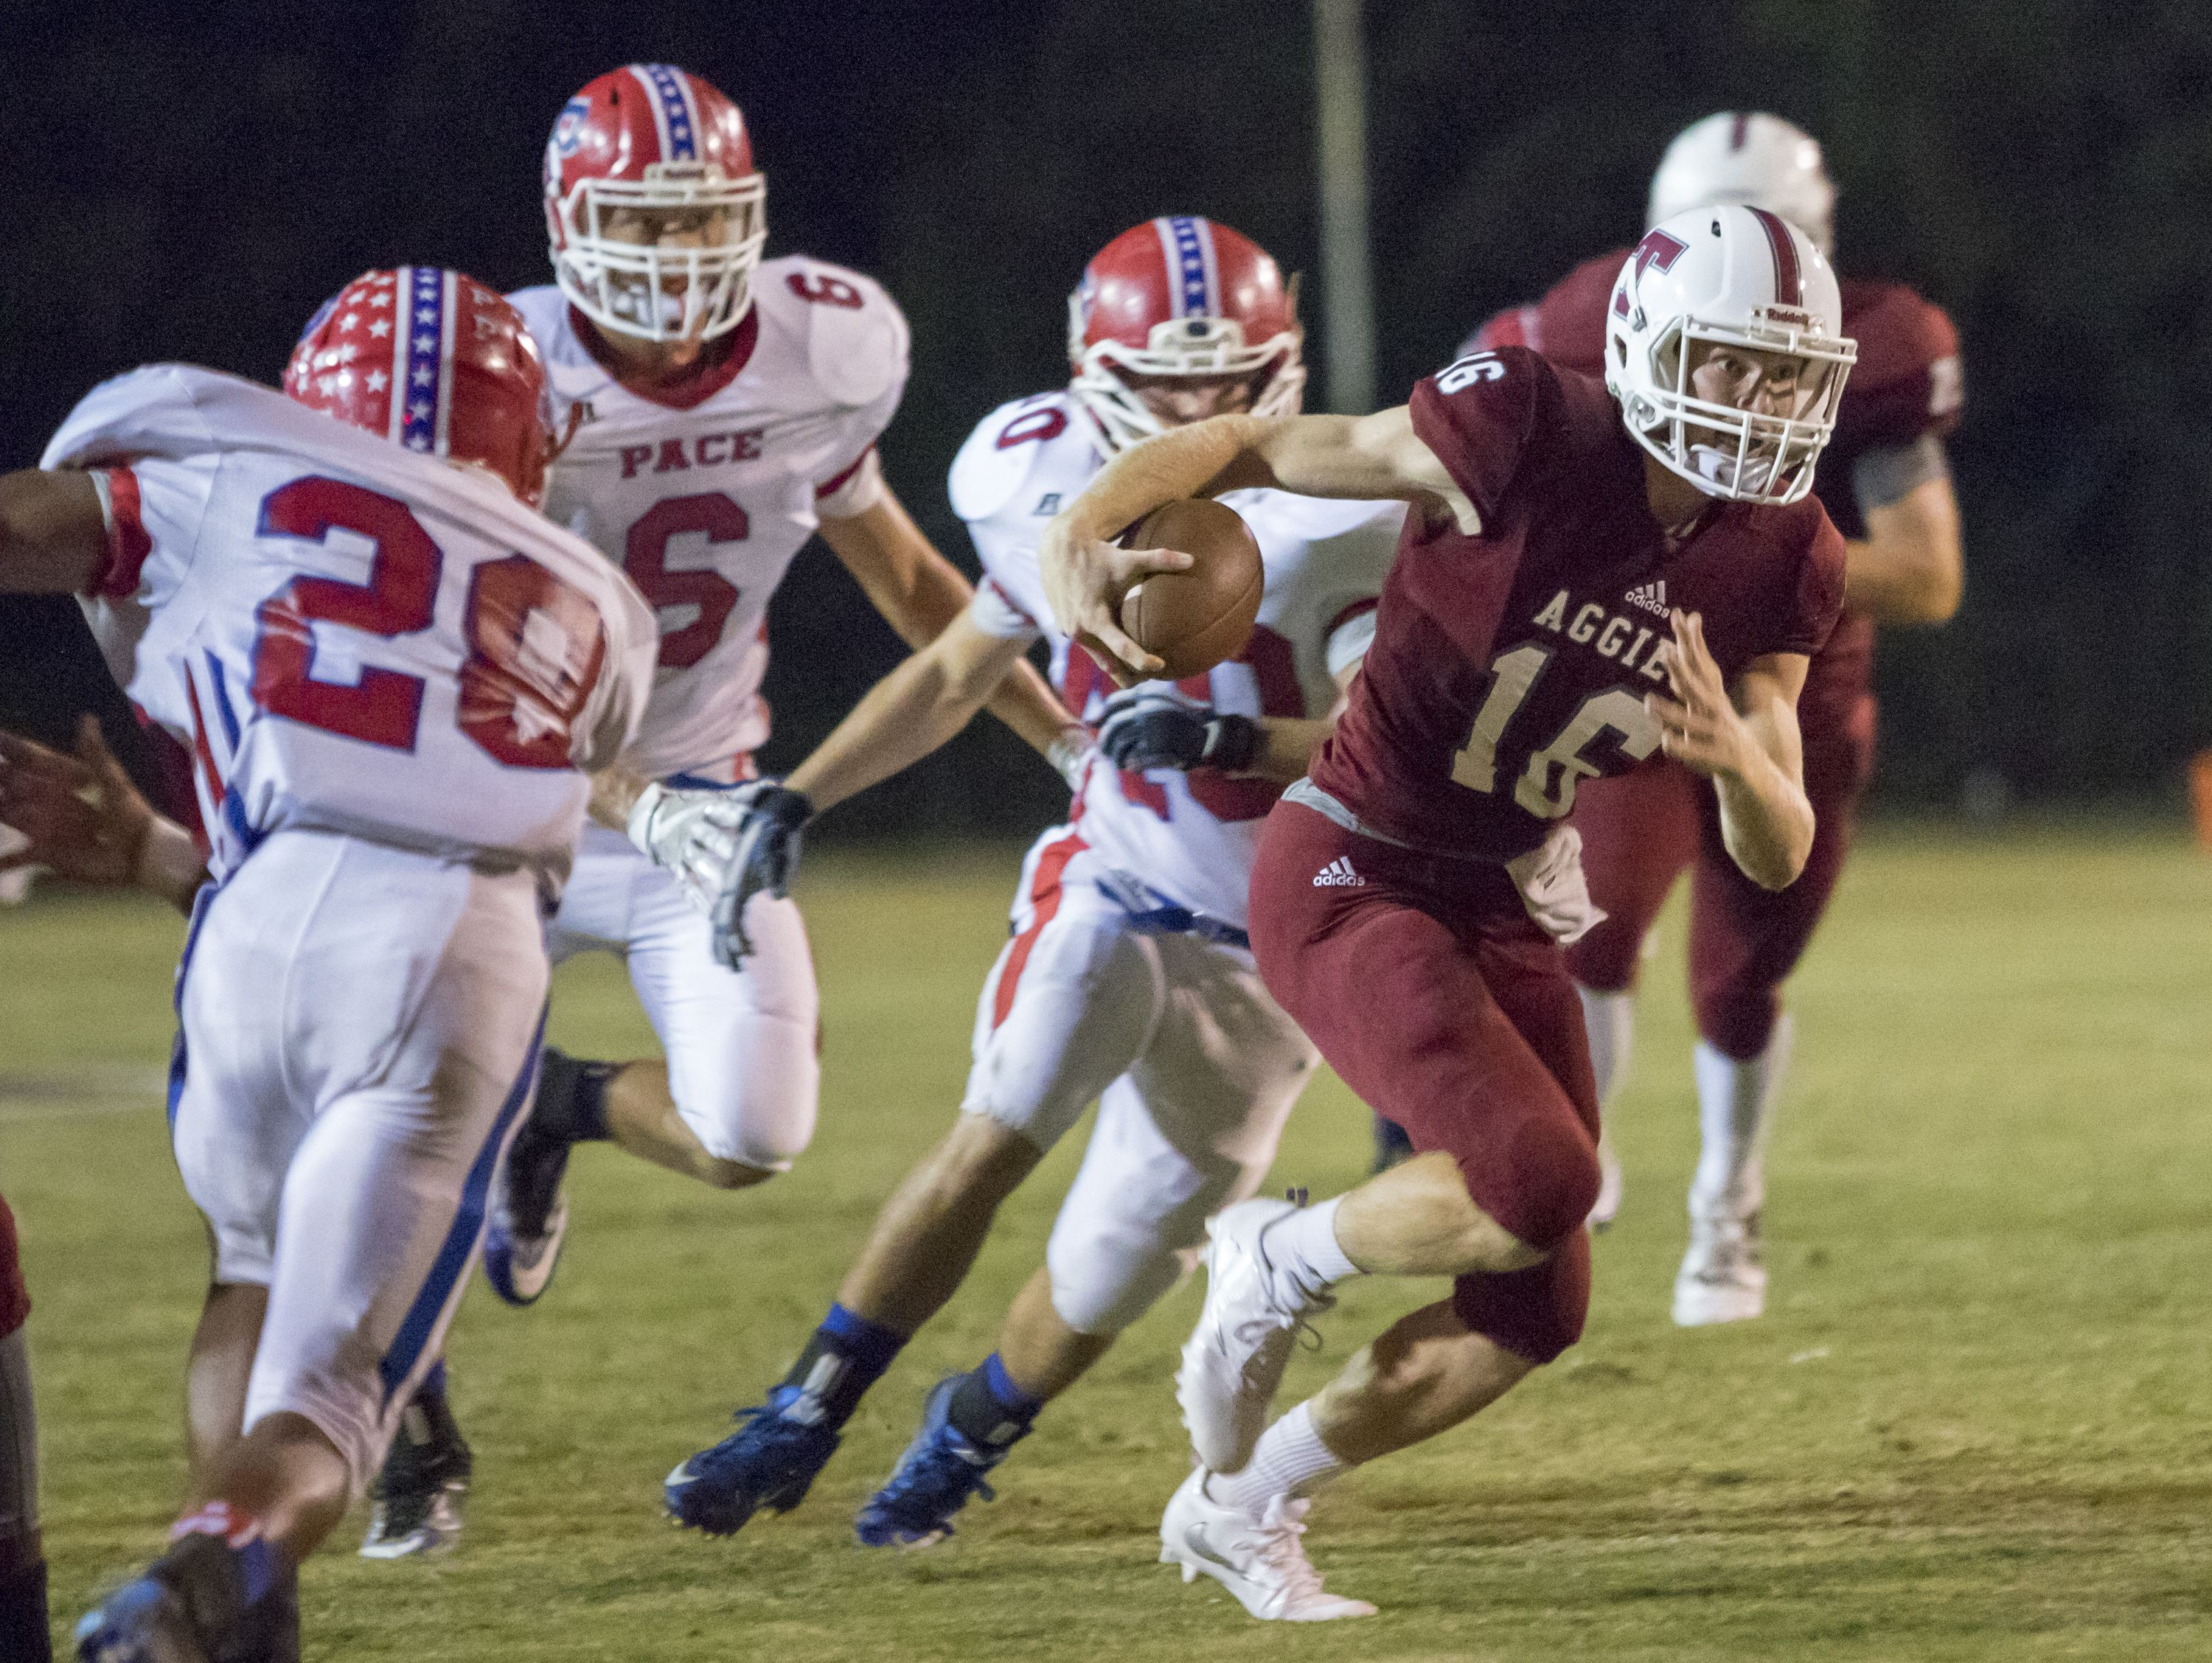 Quarterback Jack Henry (16) keeps the ball during the Pace vs Tate football game at Tate High School on Friday, October 7, 2016.